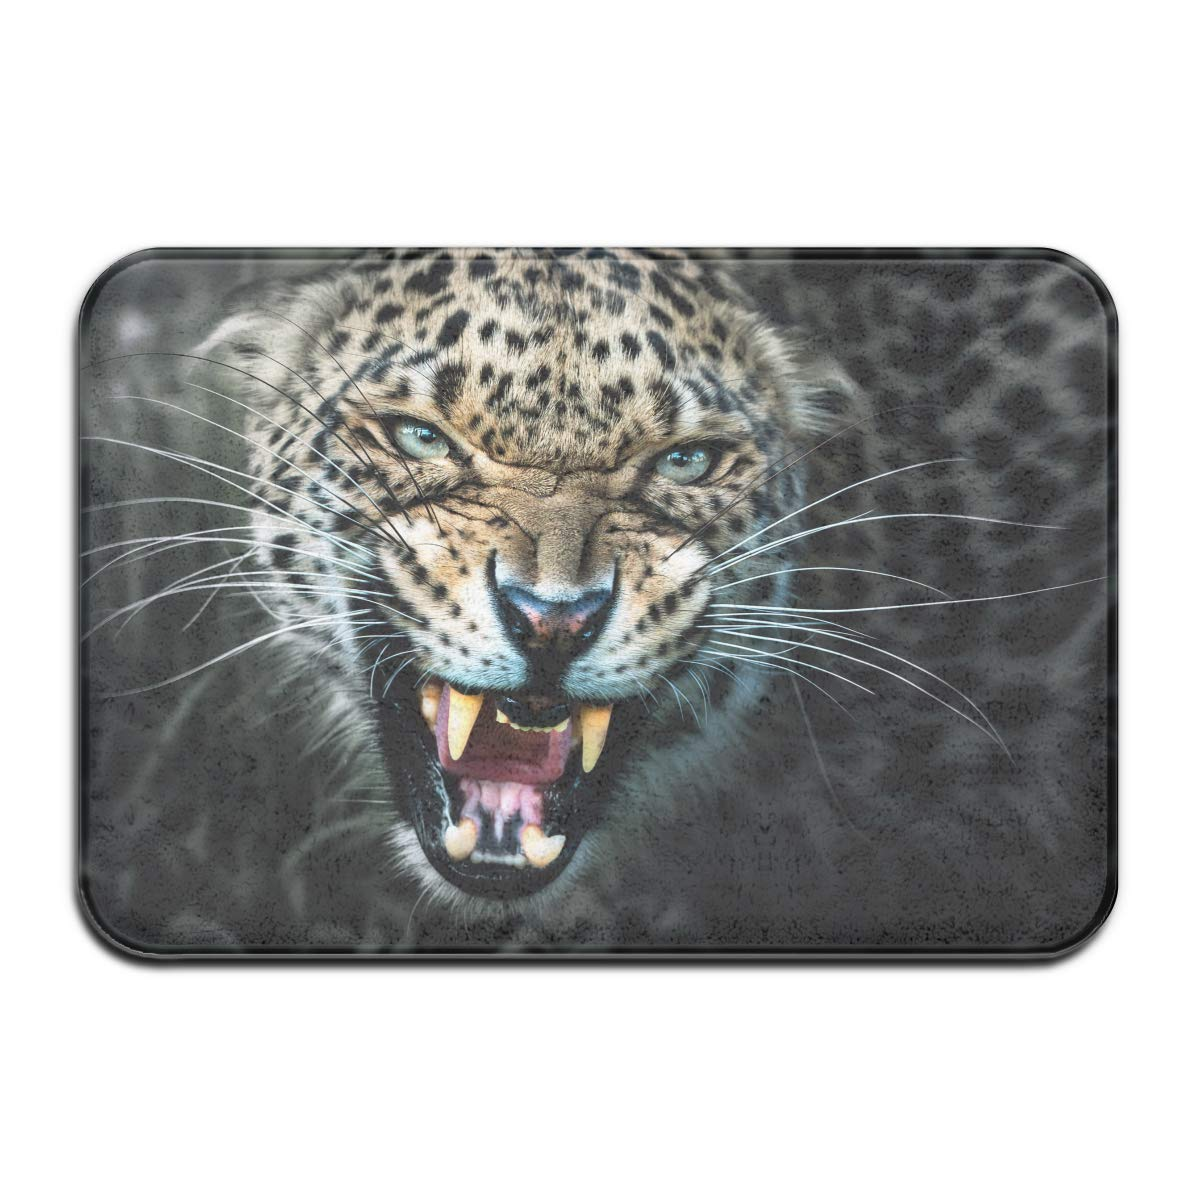 Roaring Leopard Bathroom Non-Slip Wild Animal Home Decor Bath Mat Rug Carpet